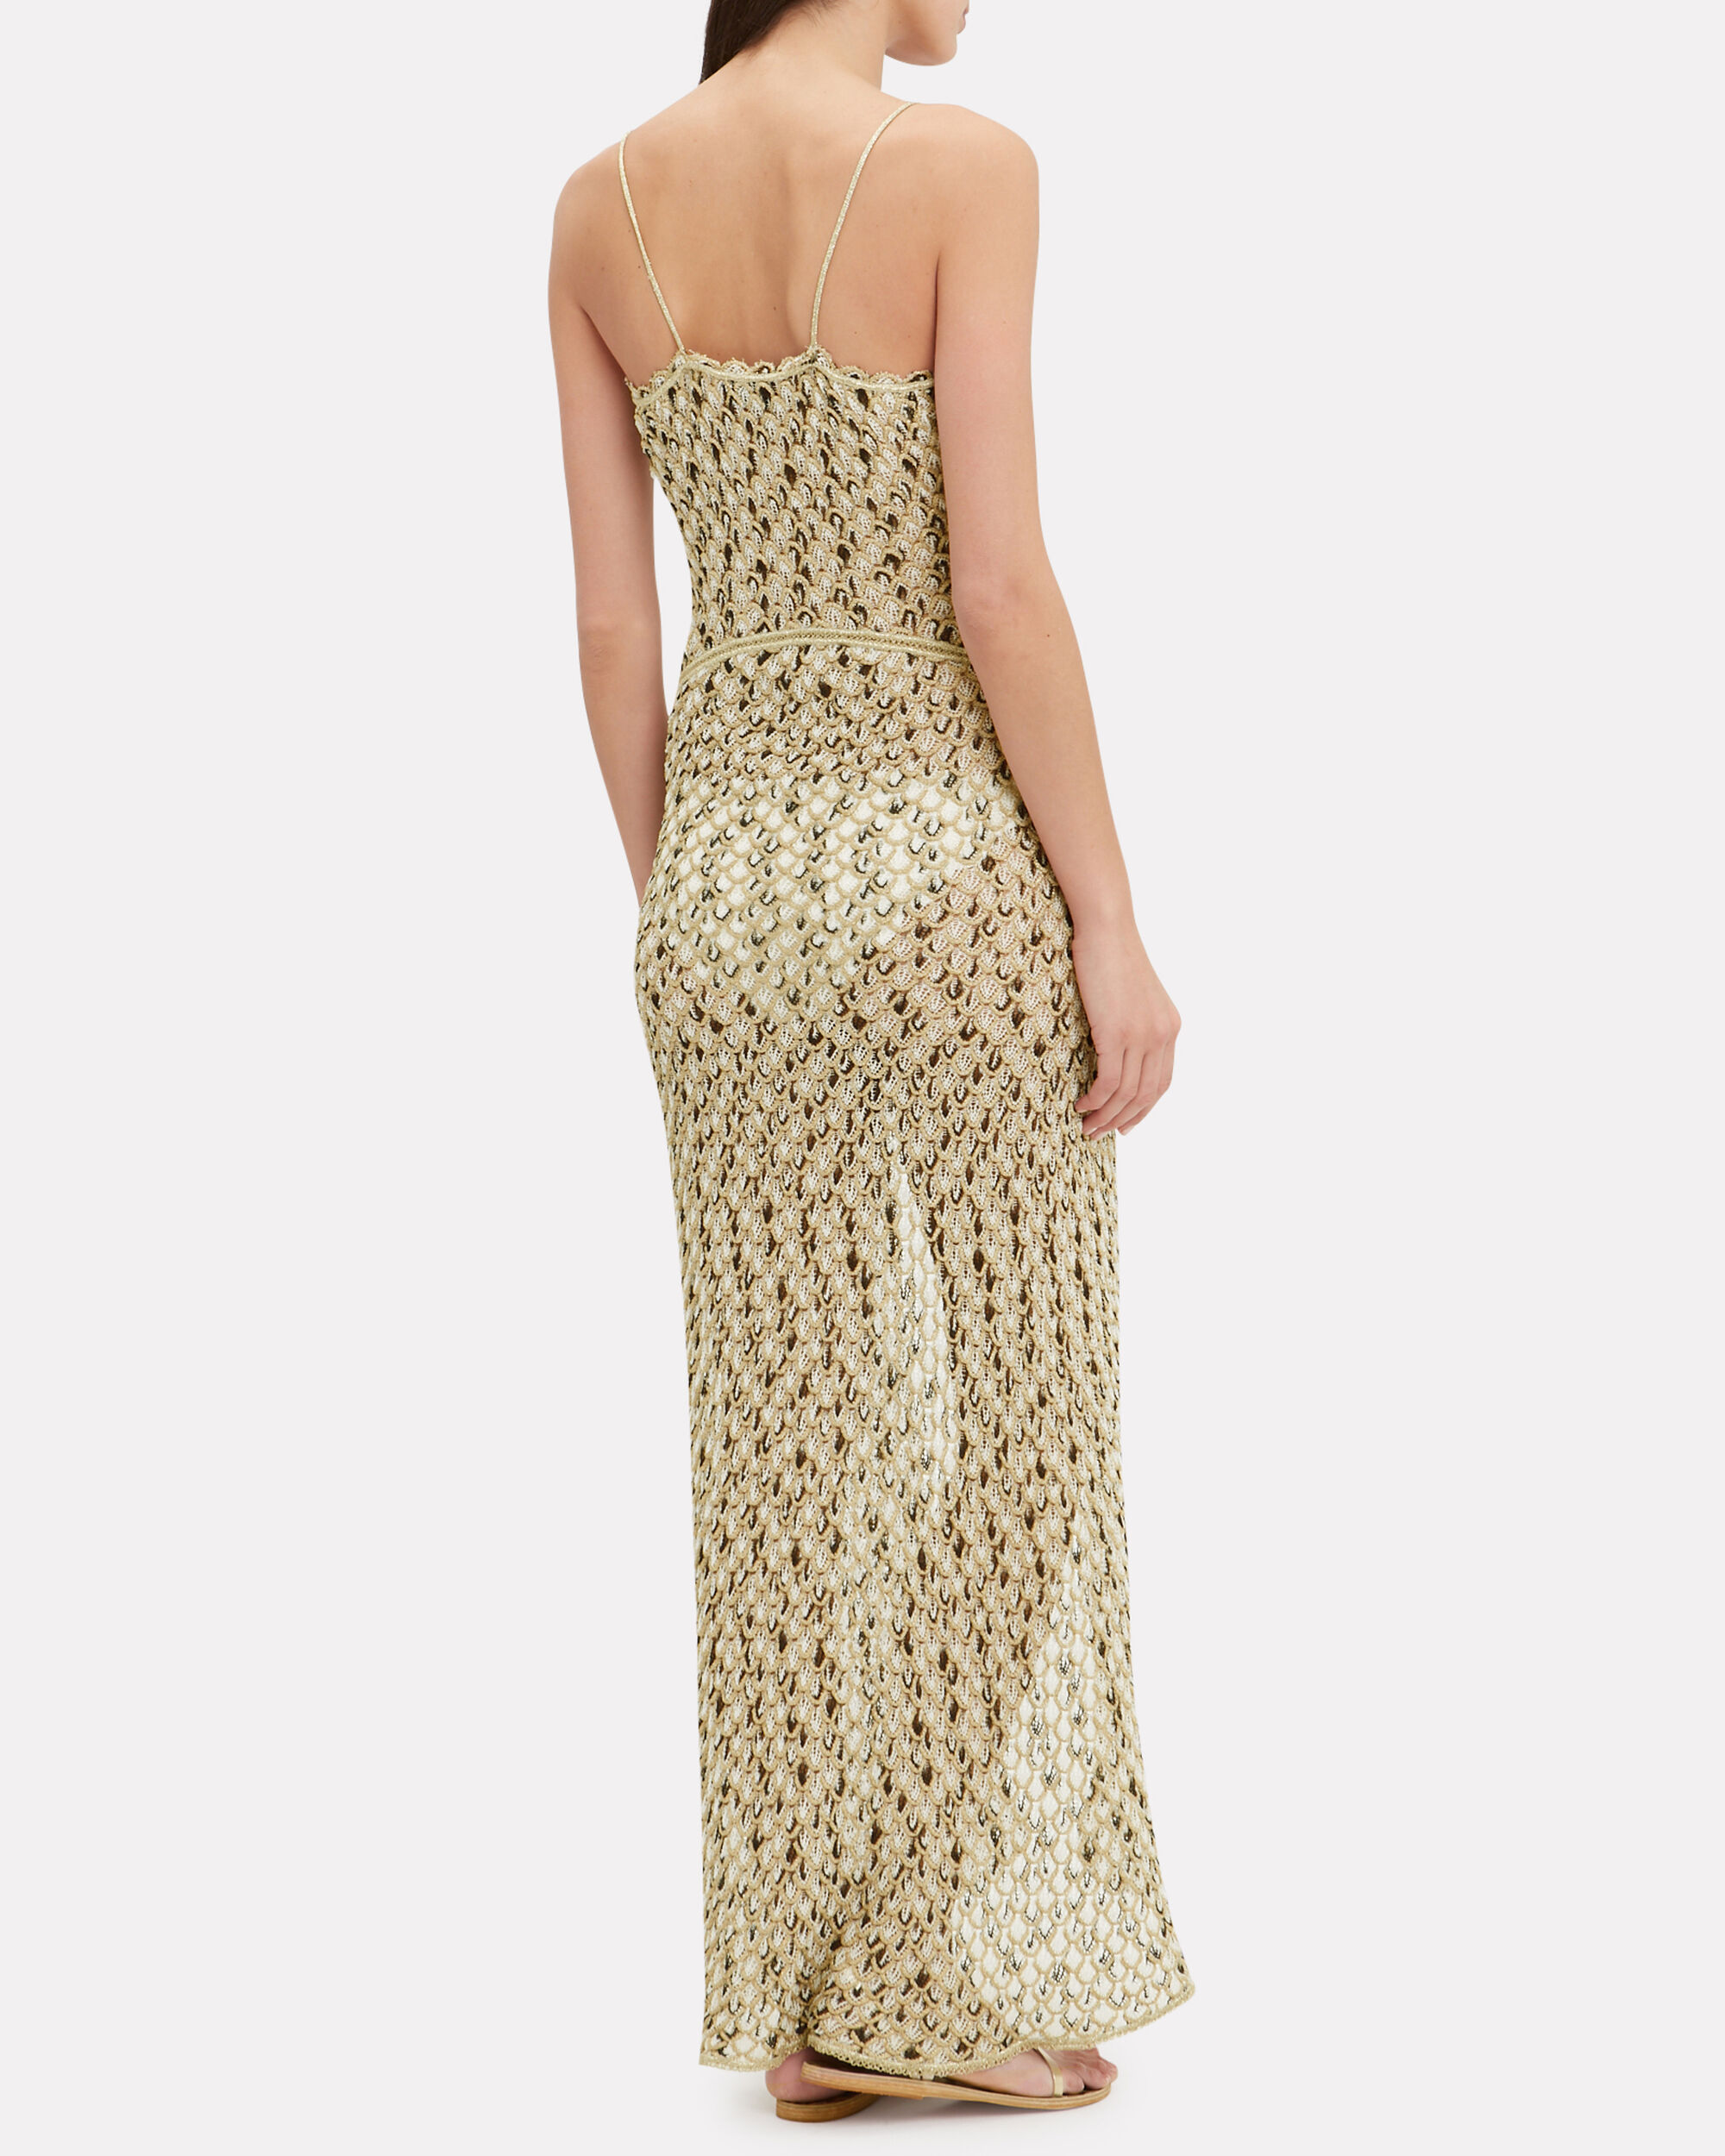 Crochet Front Slit Maxi Dress, GOLD, hi-res